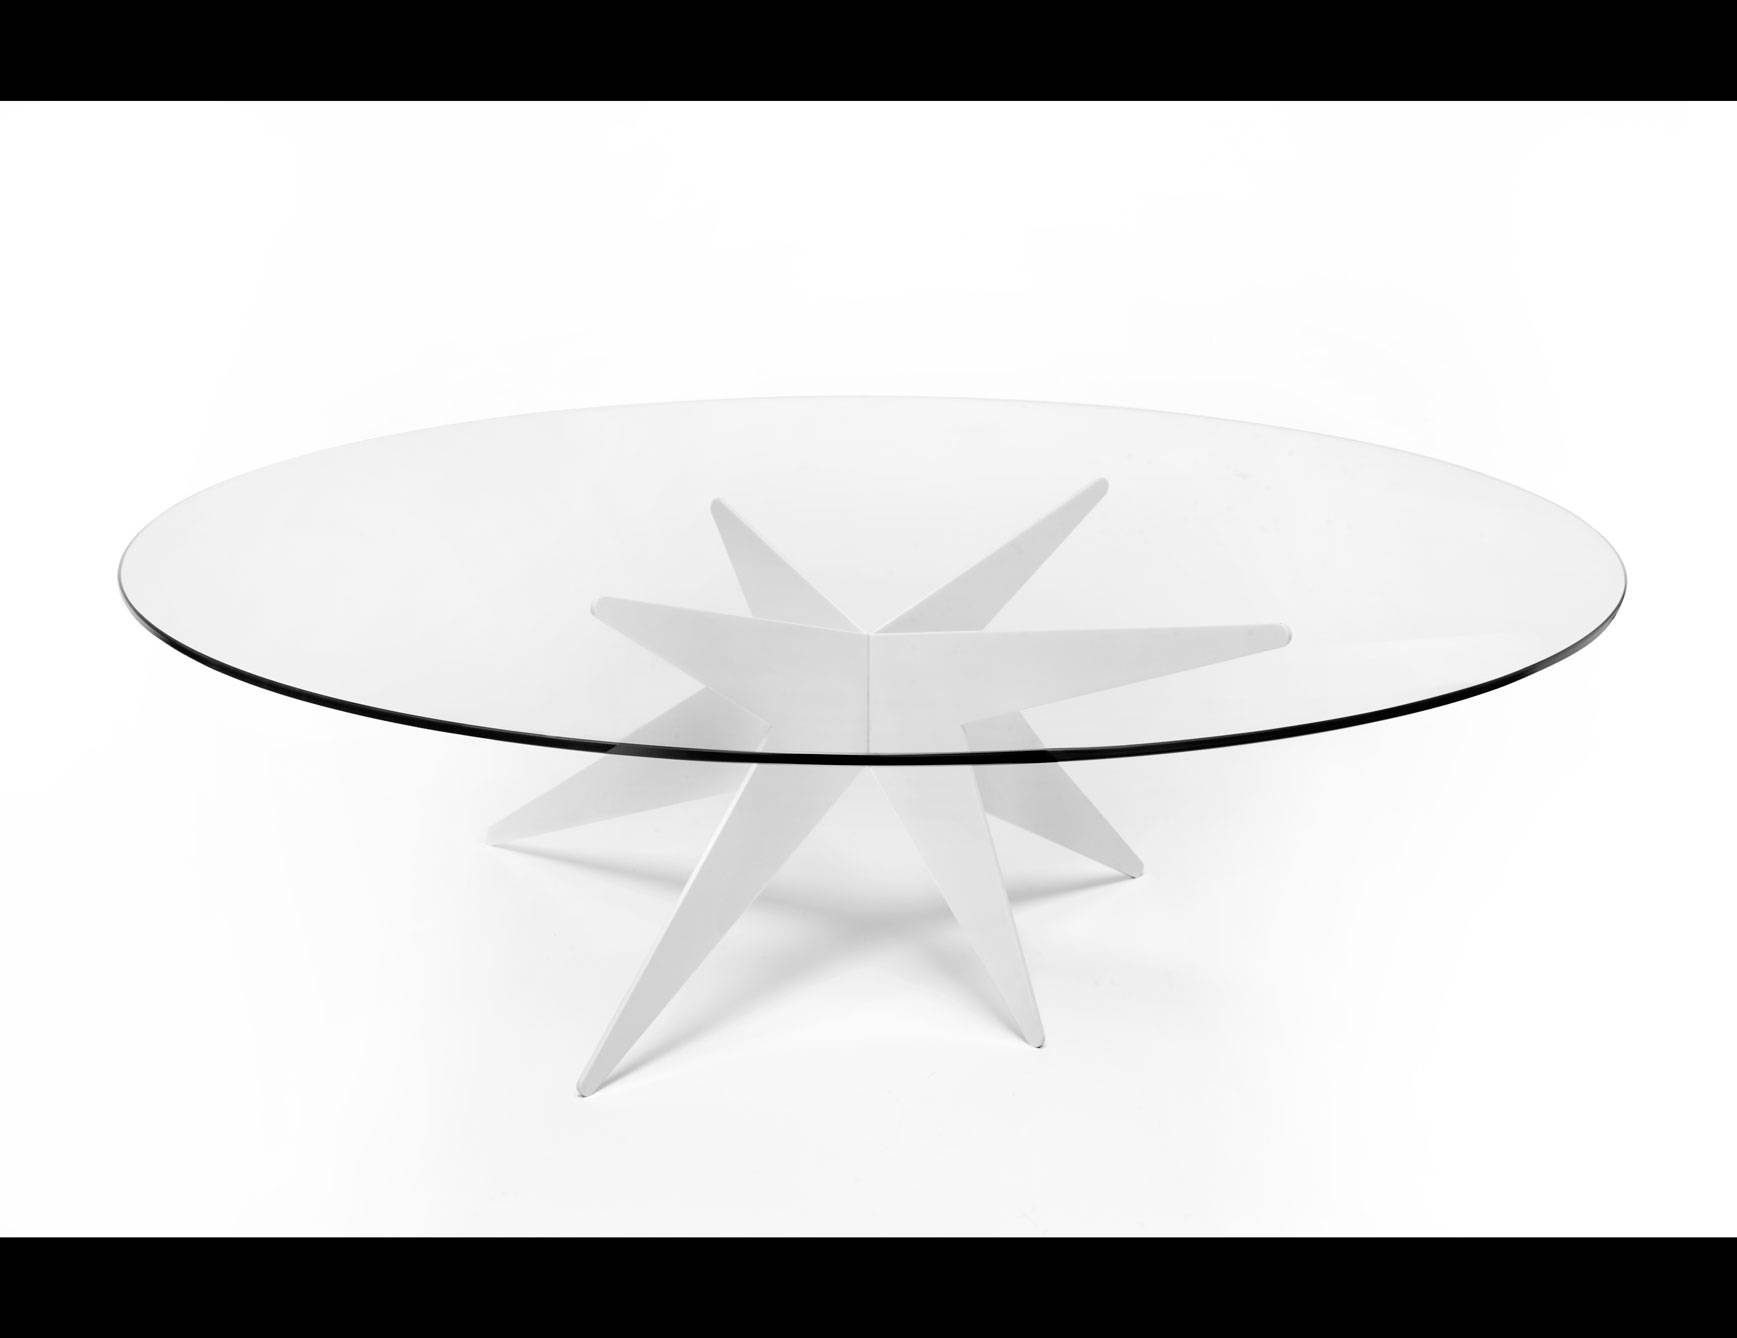 Designer Italian Luxury High End Coffee Tables: Nella Vetrina with Low Glass Coffee Tables (Image 6 of 30)